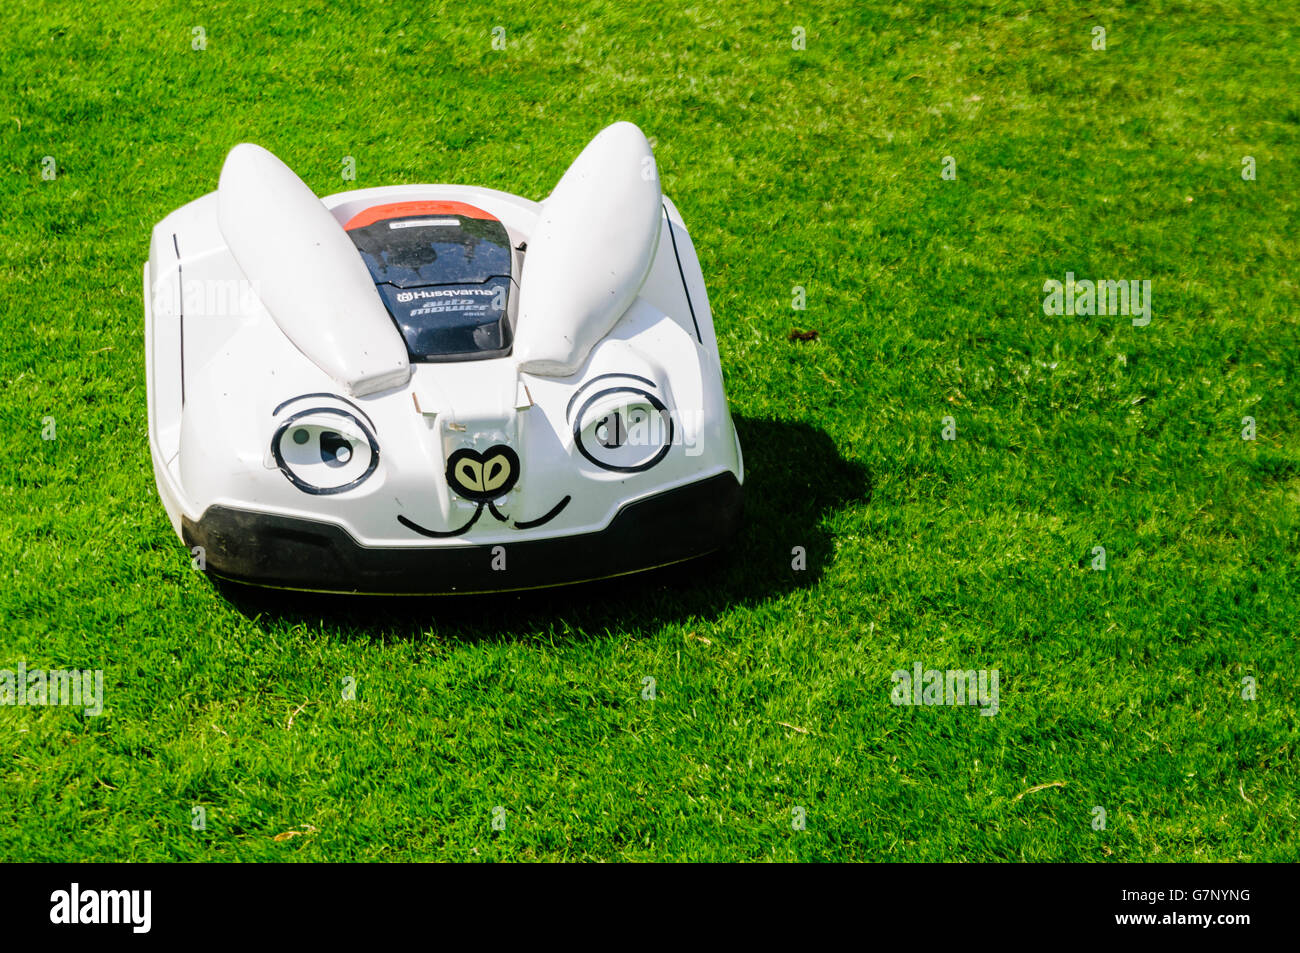 A Husqvarna robotic grass and lawn mower disguised as a rabbit. - Stock Image